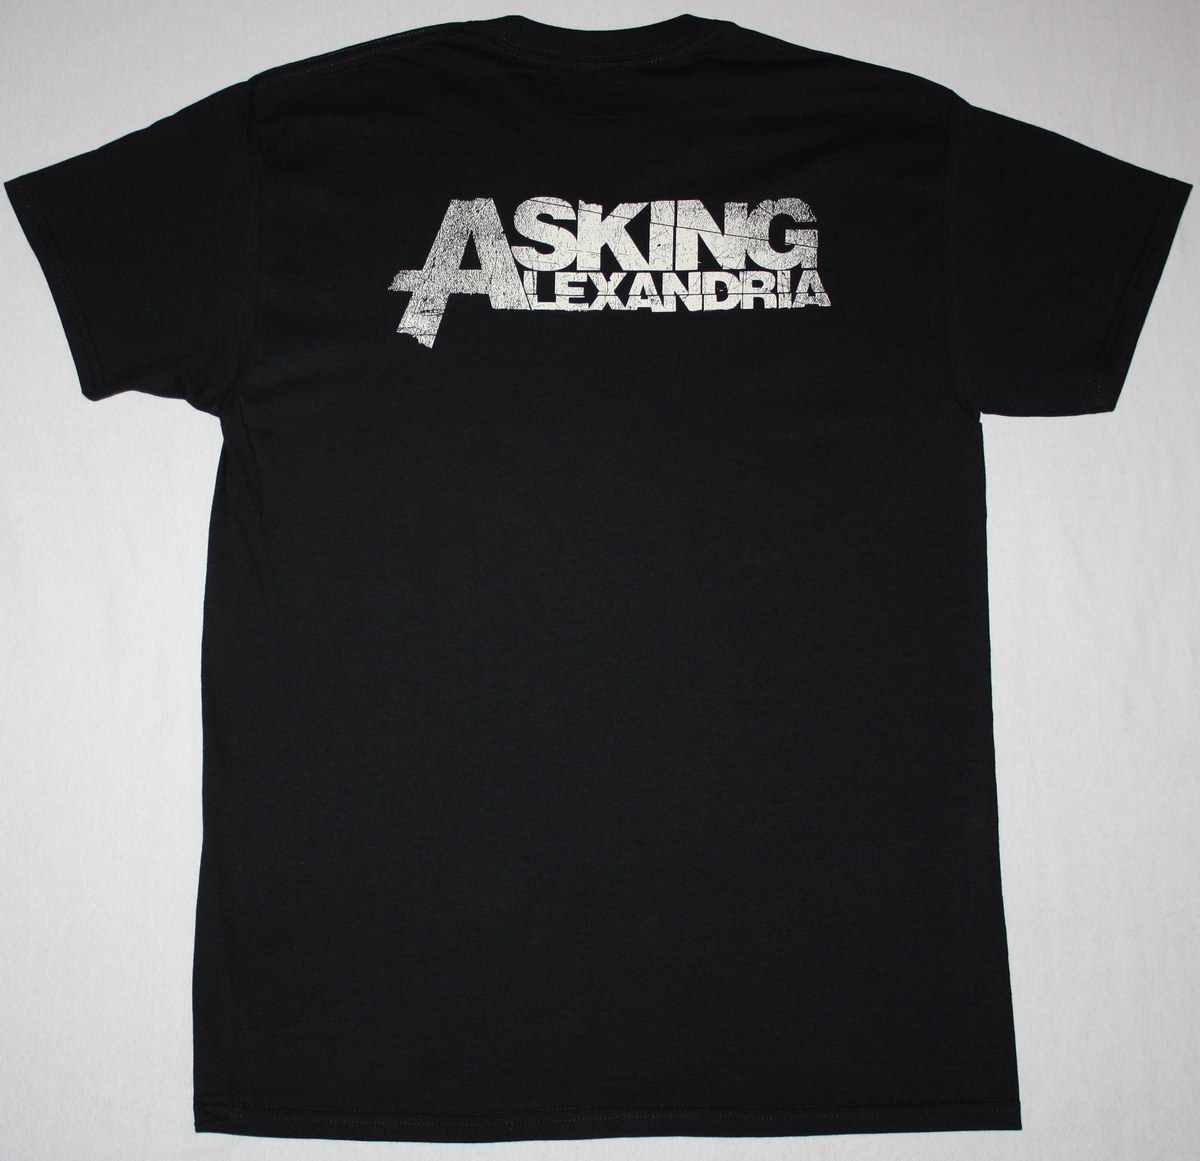 ASKING ALEXANDRIA STAND UP AND SCREAM NEW BLACK T-SHIRT